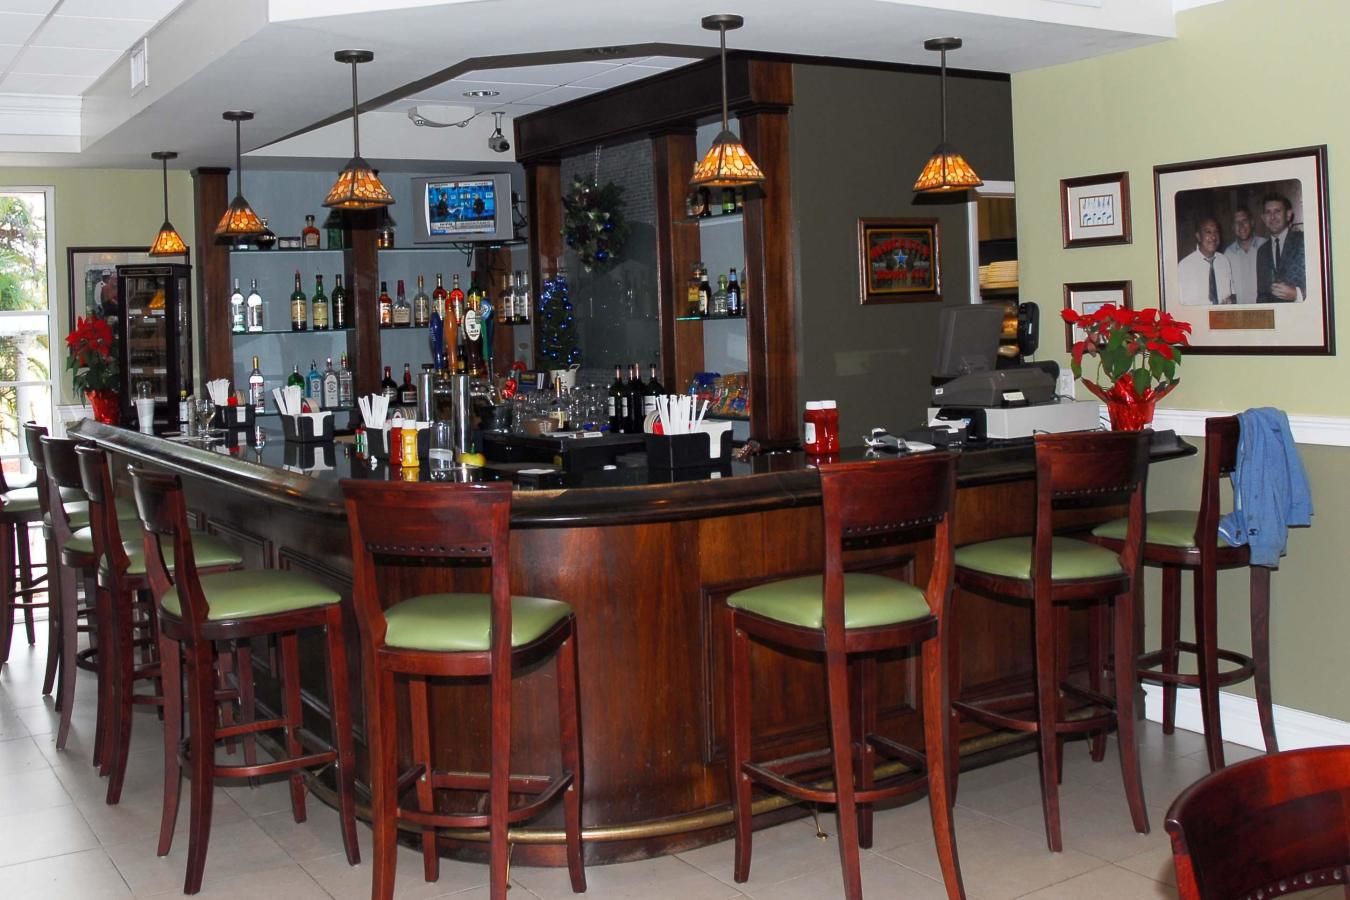 Guests may enjoy lunch or snacks in our beautiful lunch facility